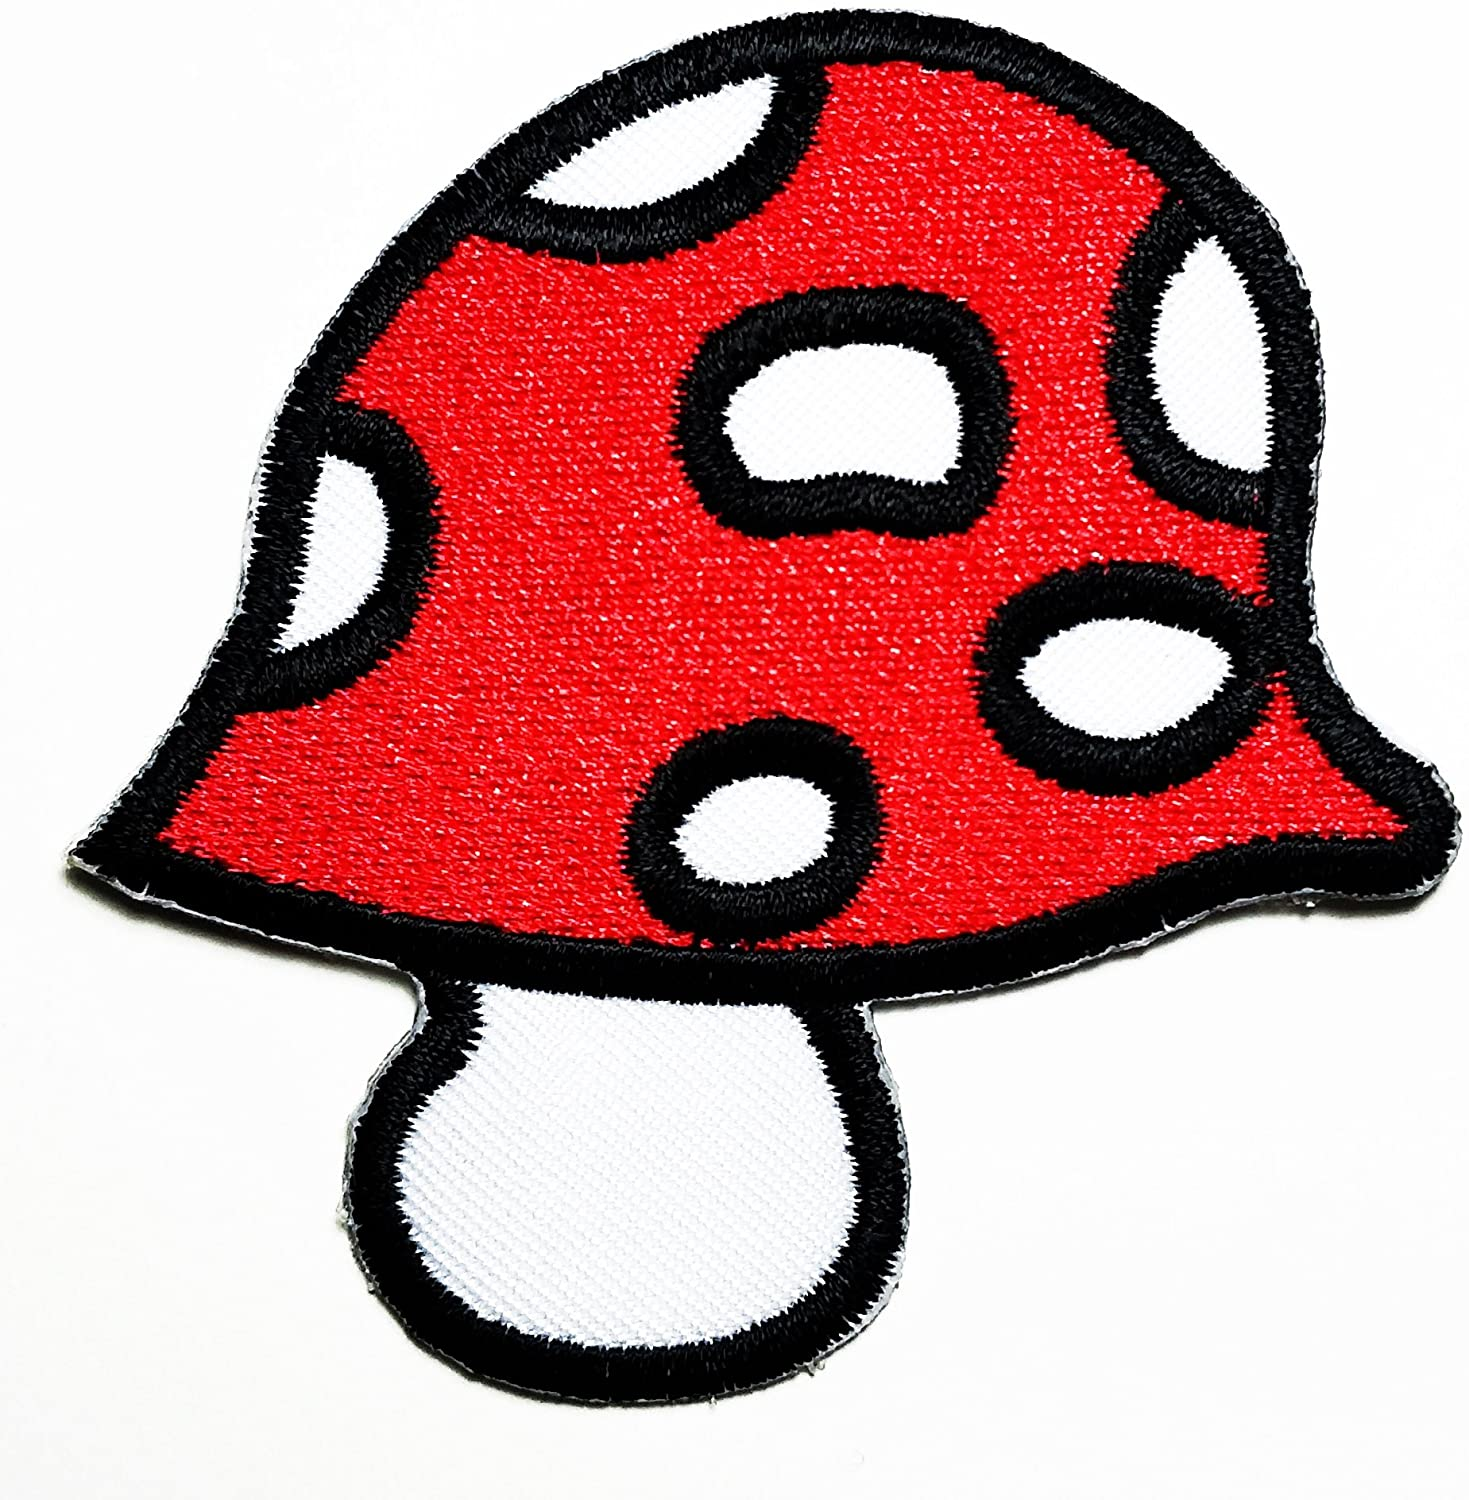 HHO Cute Pretty Mushroom Patch Embroidered DIY Patches, Cute Applique Sew Iron on Kids Craft Patch for Bags Jackets Jeans Clothes